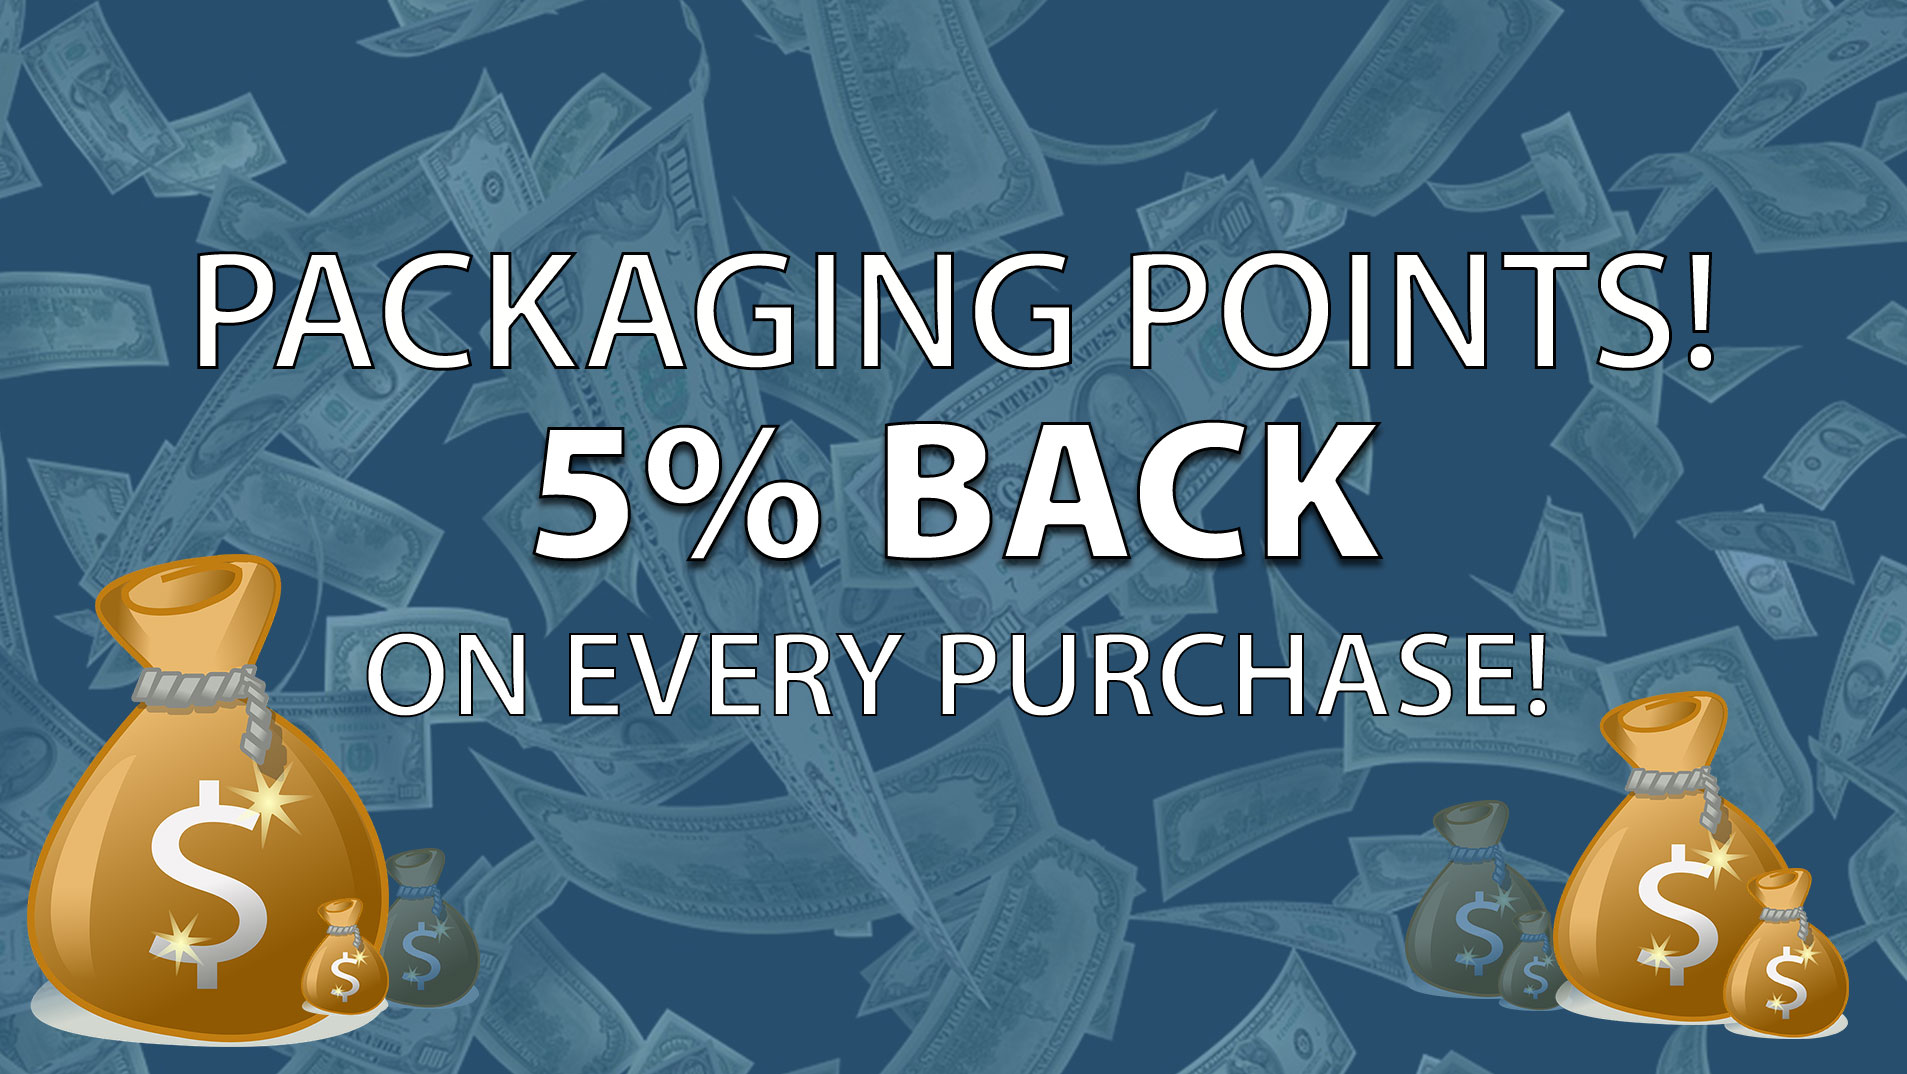 Save with Packaging Points!